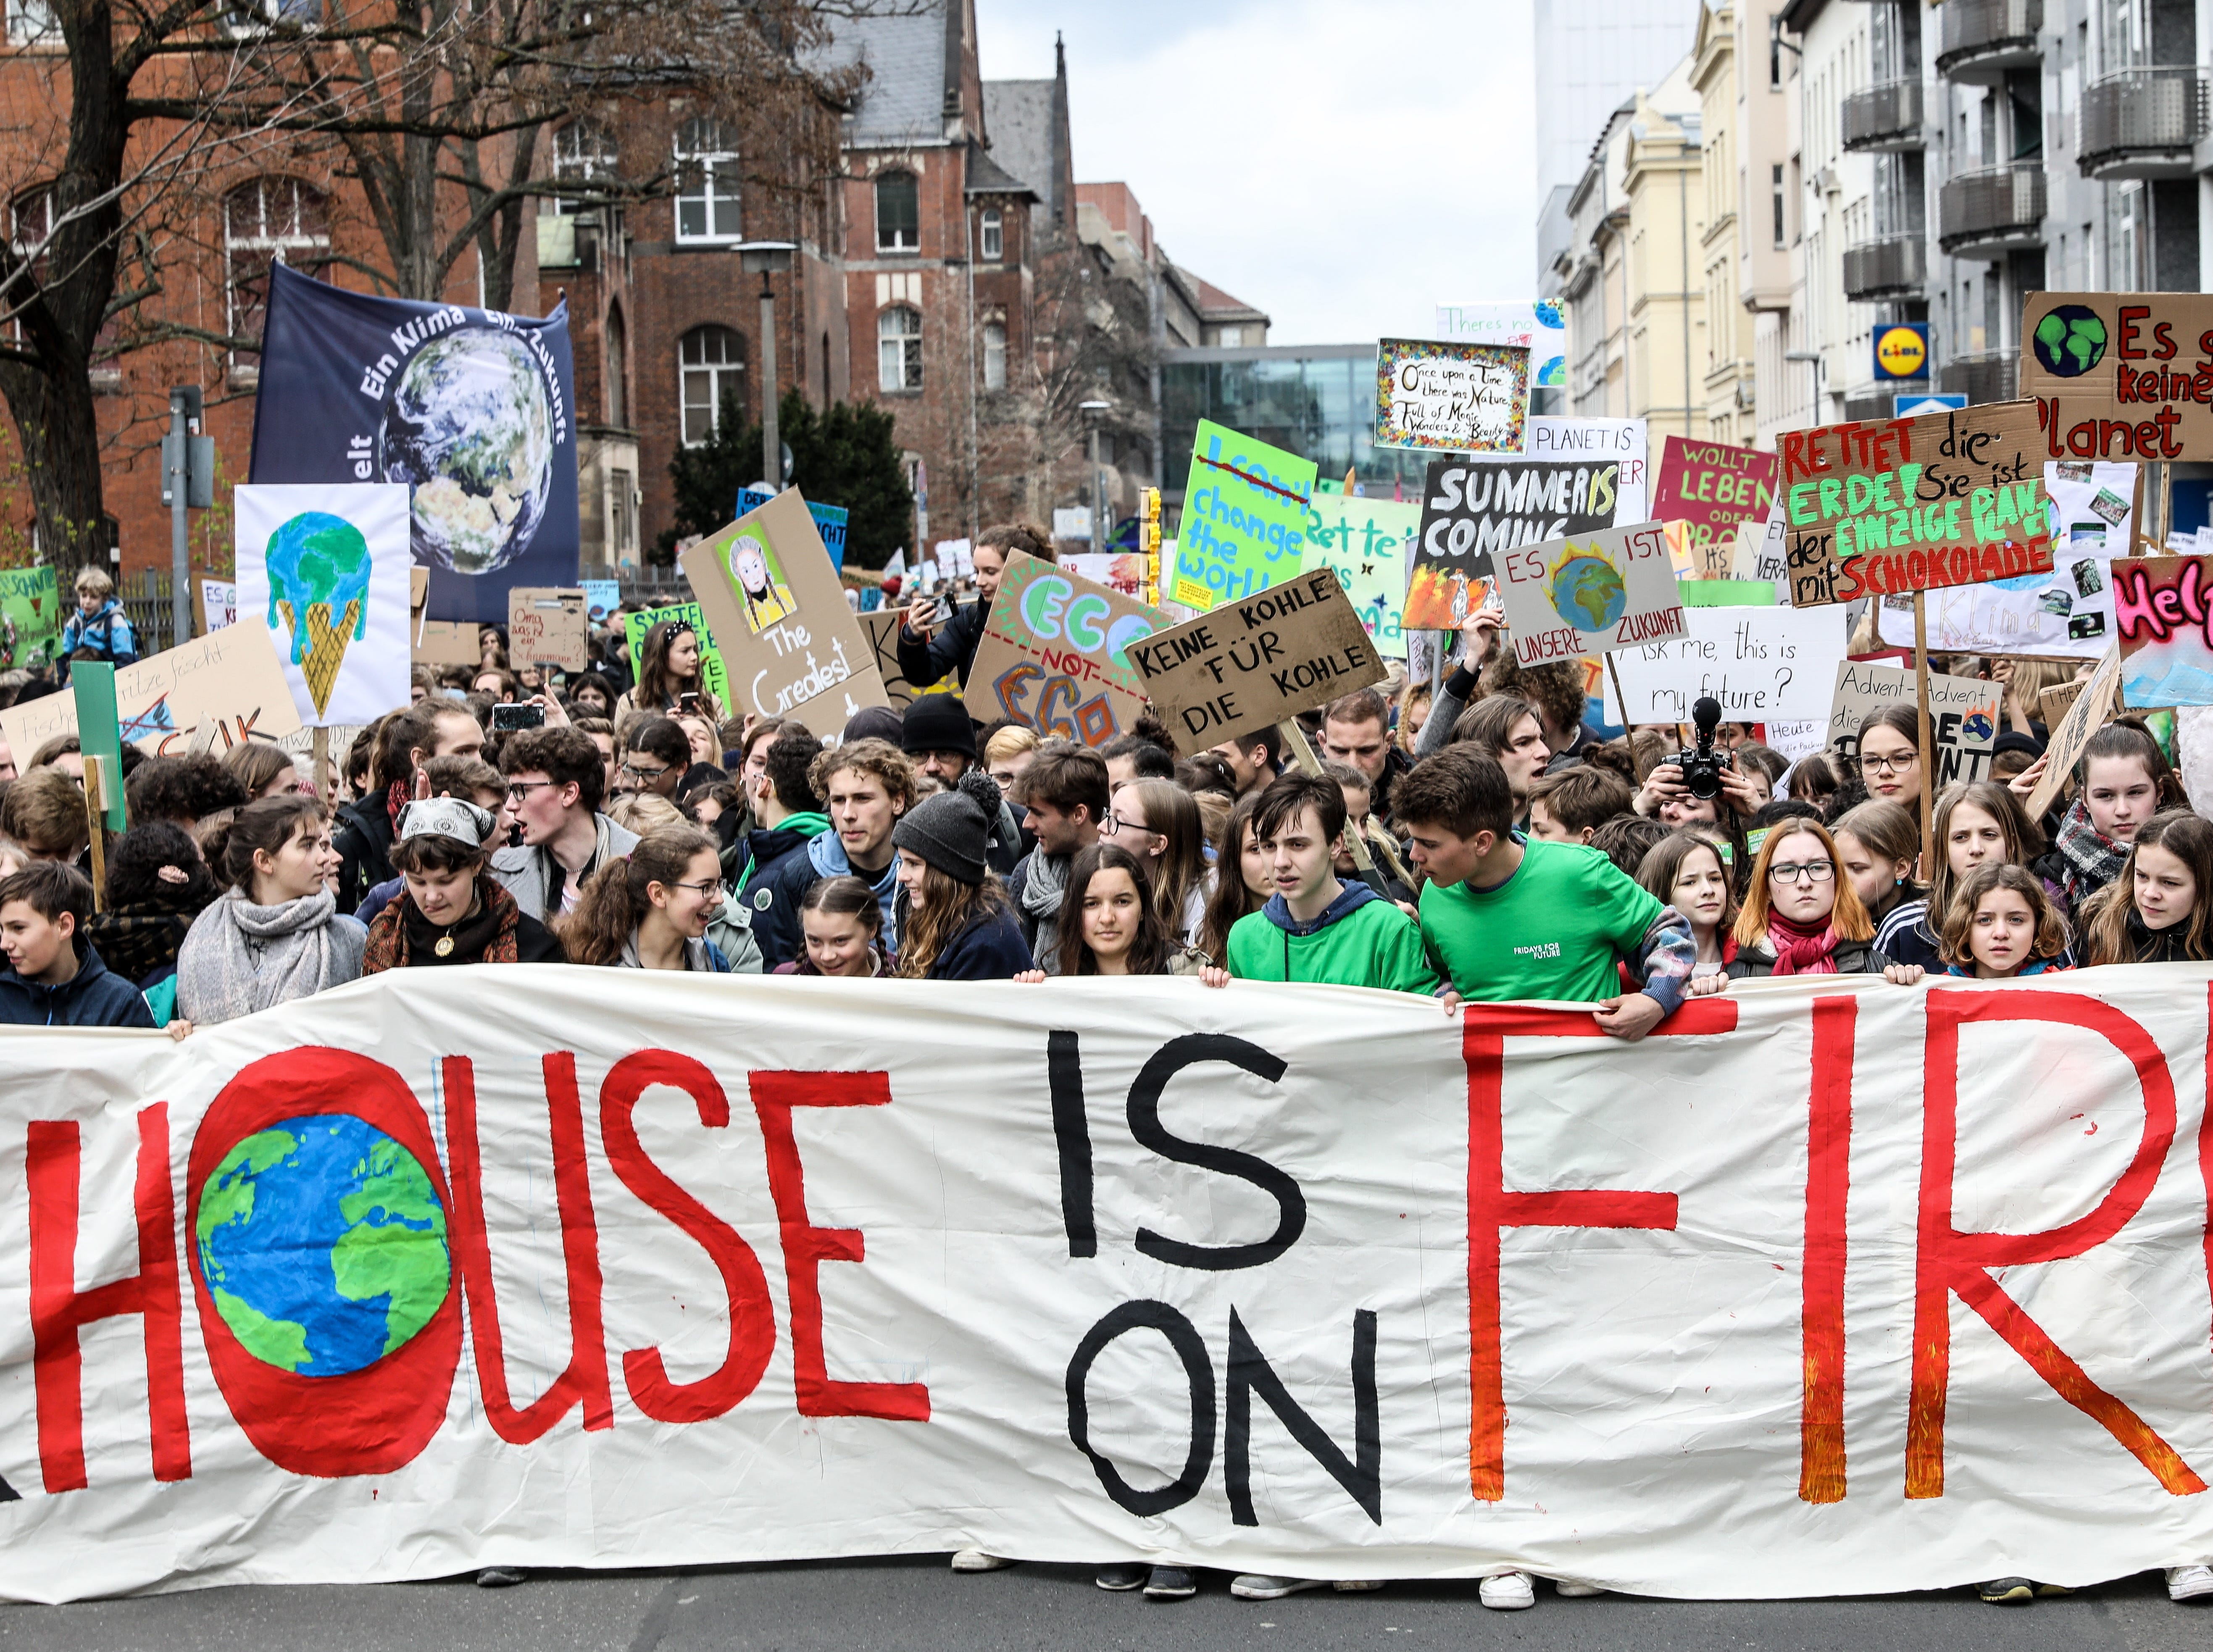 Students hold a banner during a 'Fridays for Future' demonstration against climate change in Berlin, Germany on March 29, 2019. Students across the world are taking part in a strike movement called #FridayForFuture which takes place every Friday. The movement was sparked by Greta Thunberg of Sweden, a sixteen year old climate activist, who has been protesting for climate action and the implementation of the Paris Agreement outside the Swedish parliament every Friday since August 2018.